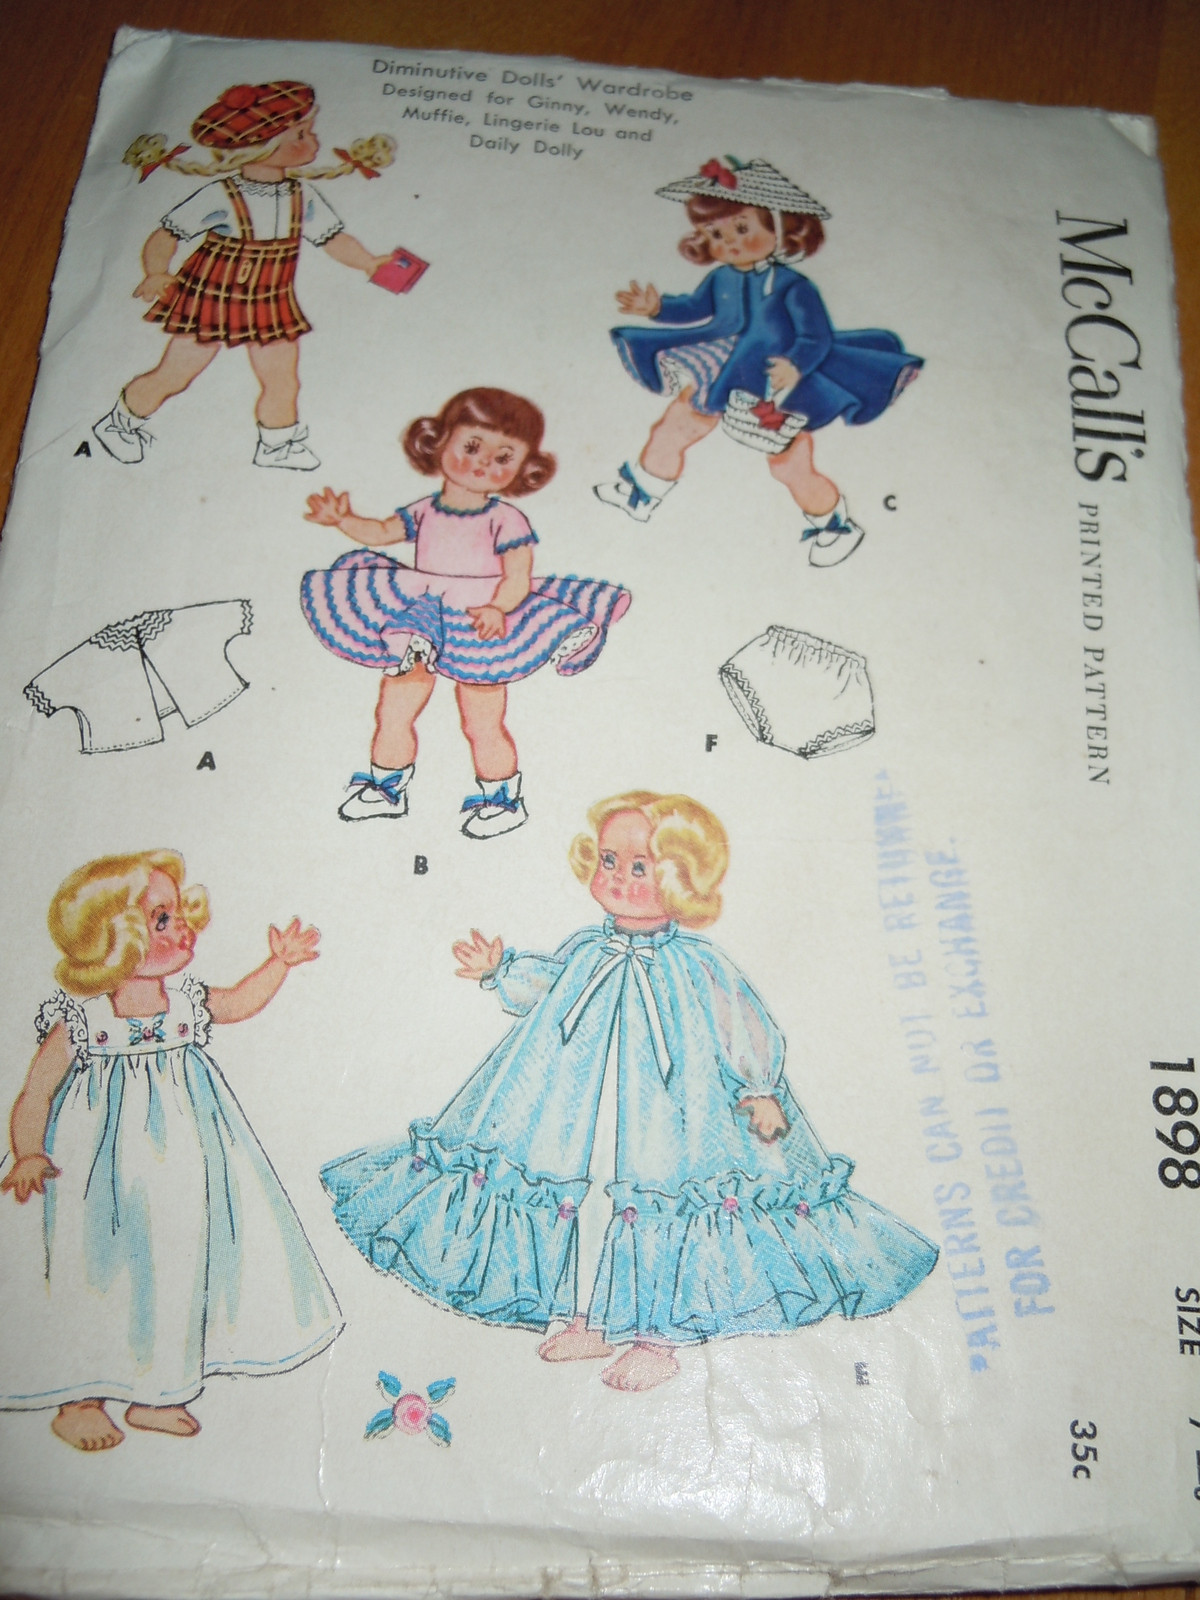 1965 Vintage Doll Clothes Pattern 7 or 8 inch Ginny Wendy Muffie Lingerie Lou